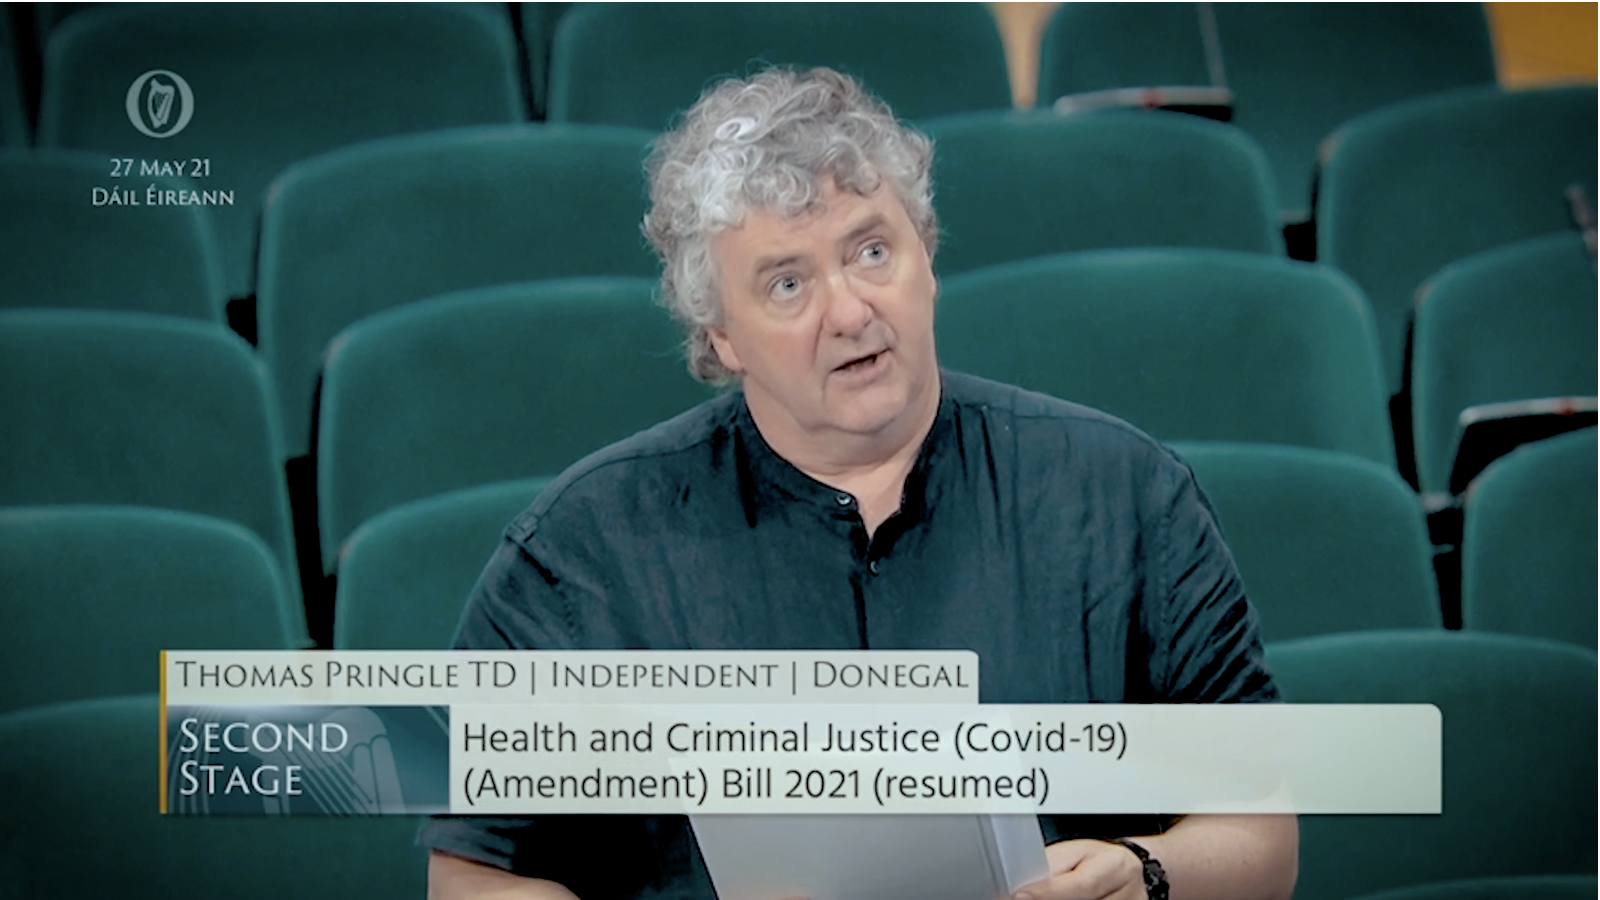 Thomas Pringle opposes indefinite extended Covid powers